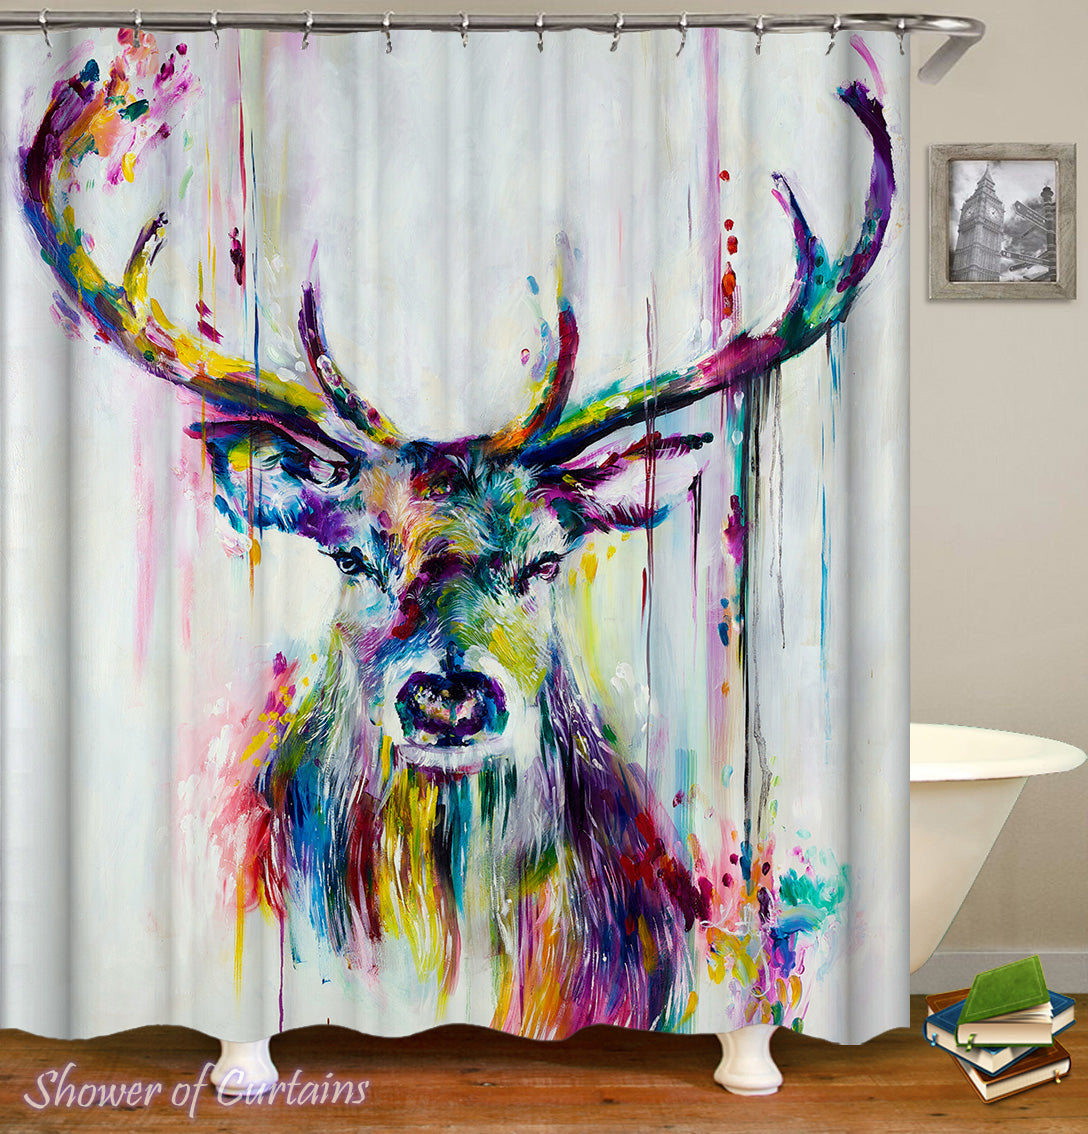 Art Colorful Shower Curtains   Colorful Deer Painting